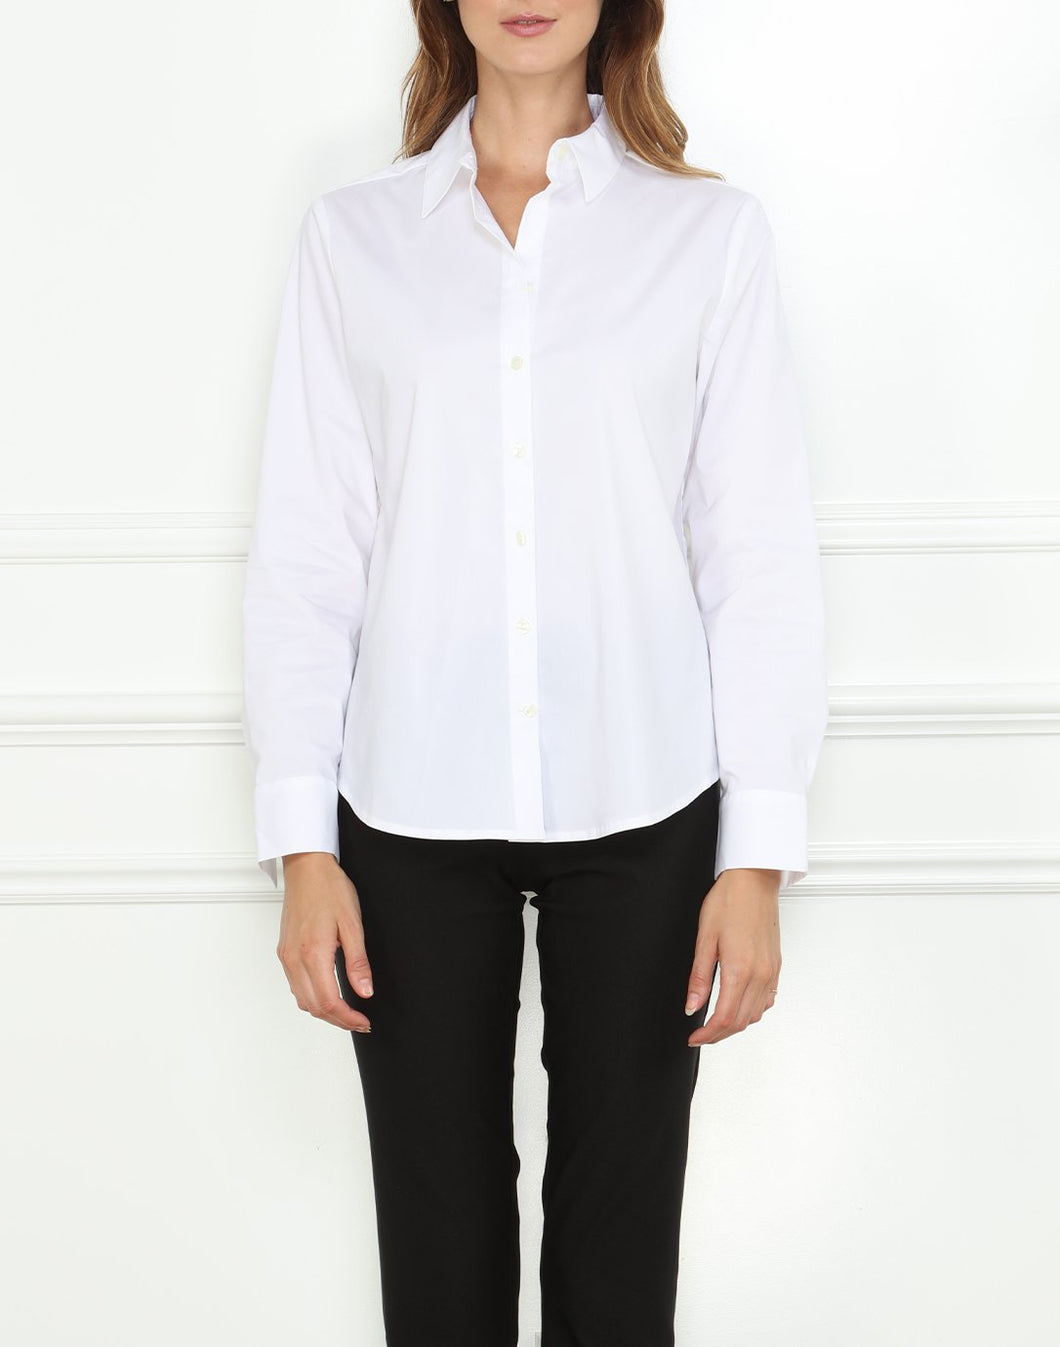 Tilda Classic Fit Shirt In White